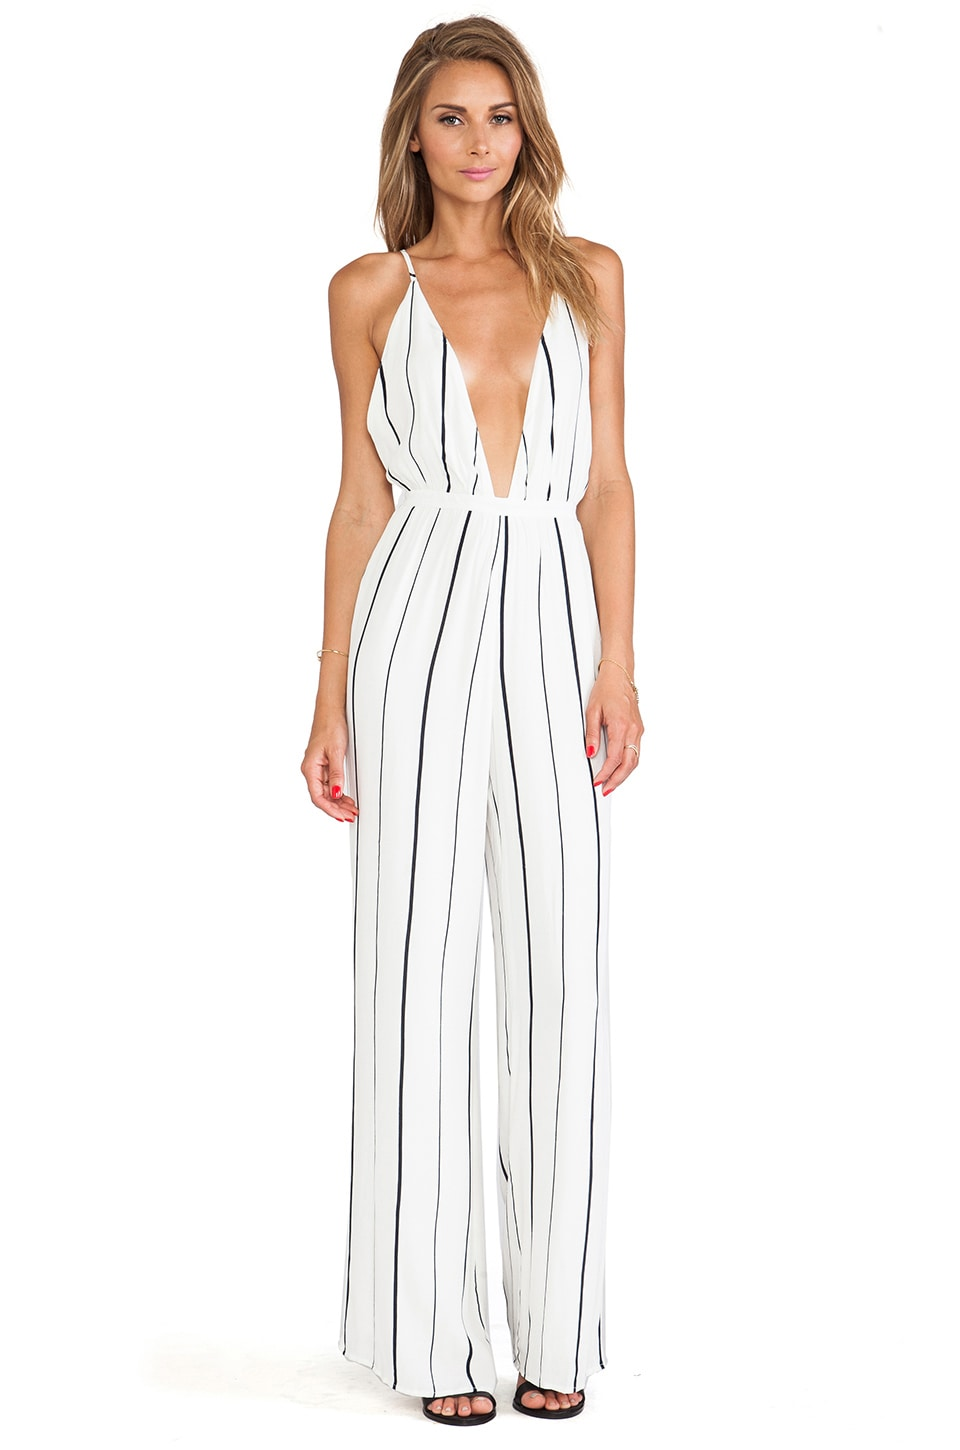 FAITHFULL THE BRAND Shutterbabe Jumpsuit in Helle Stripe Print